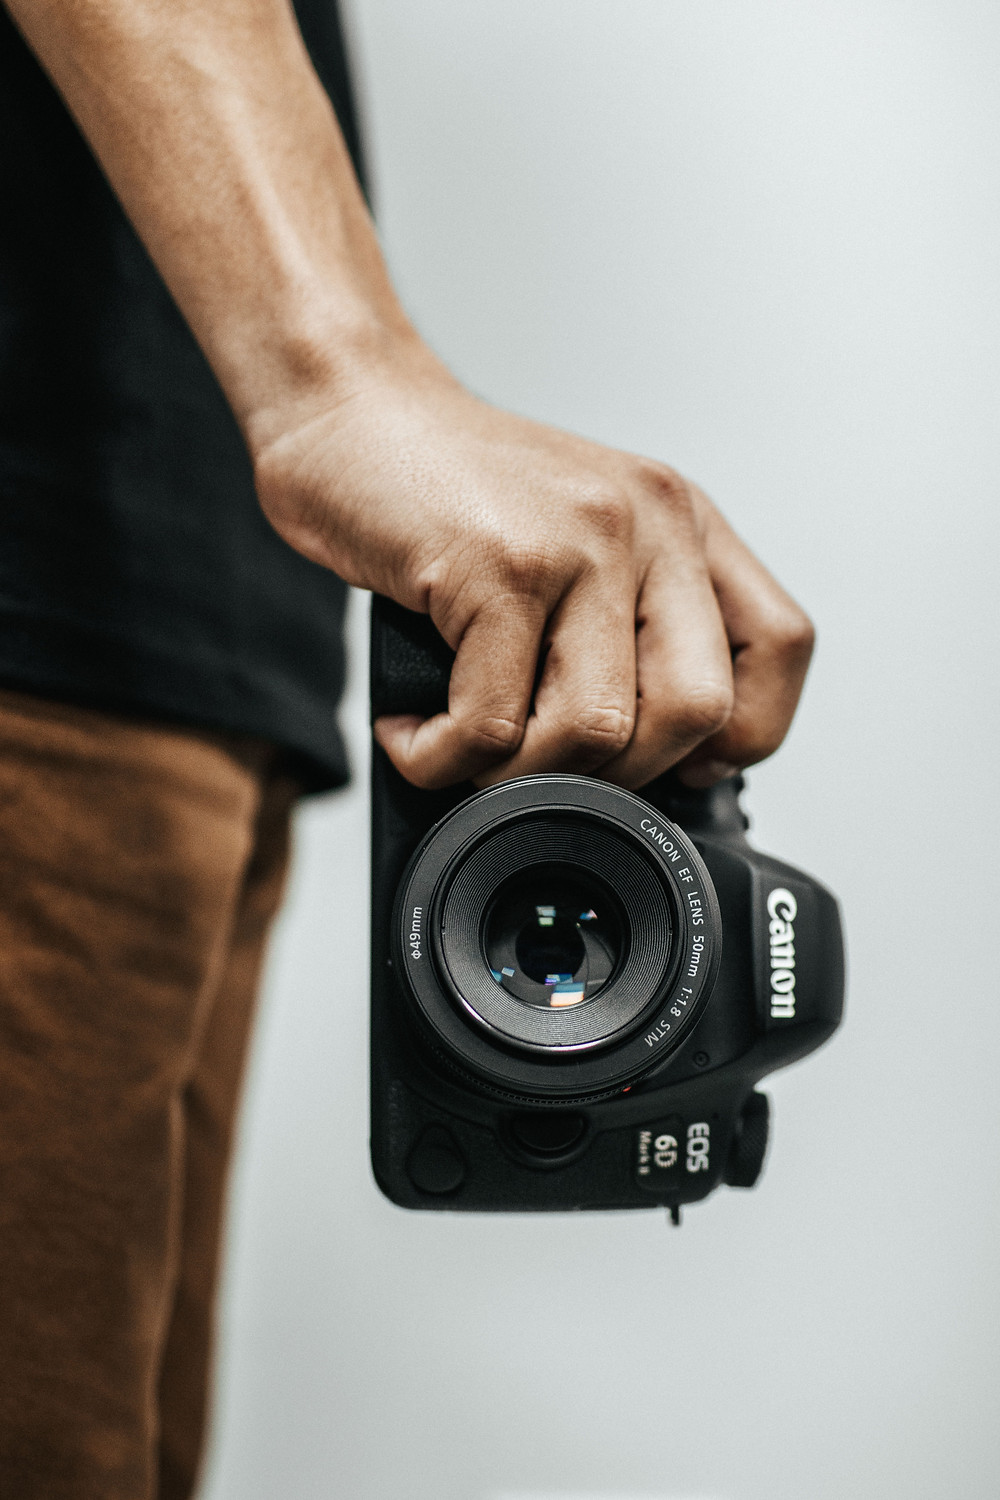 Close-up of hand holding a canon camera. E-commerce depends on quality photos to improve sales.